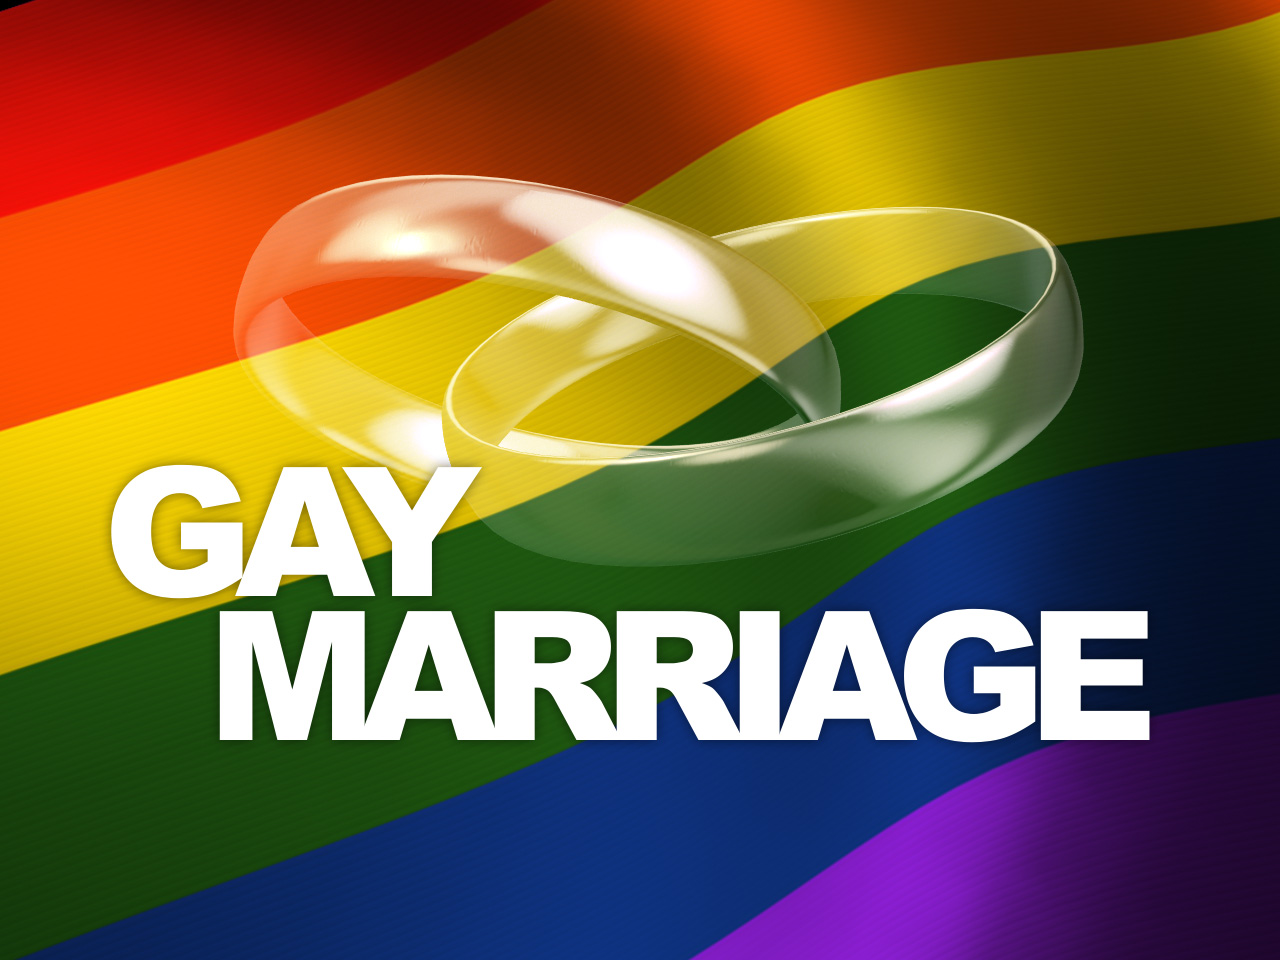 Should homosexual couples be able to marry